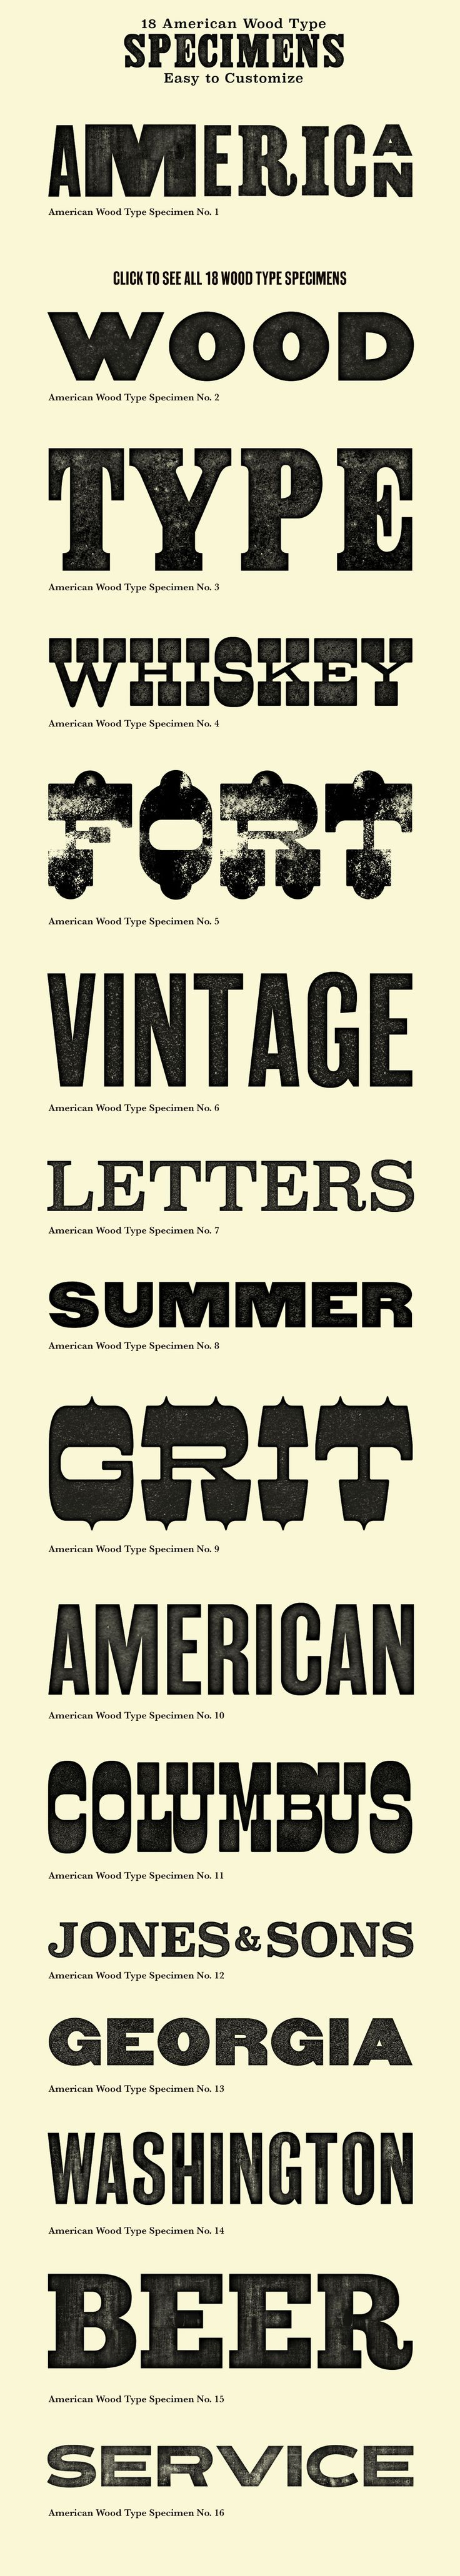 American Wood Type - Actions by Dustin Lee